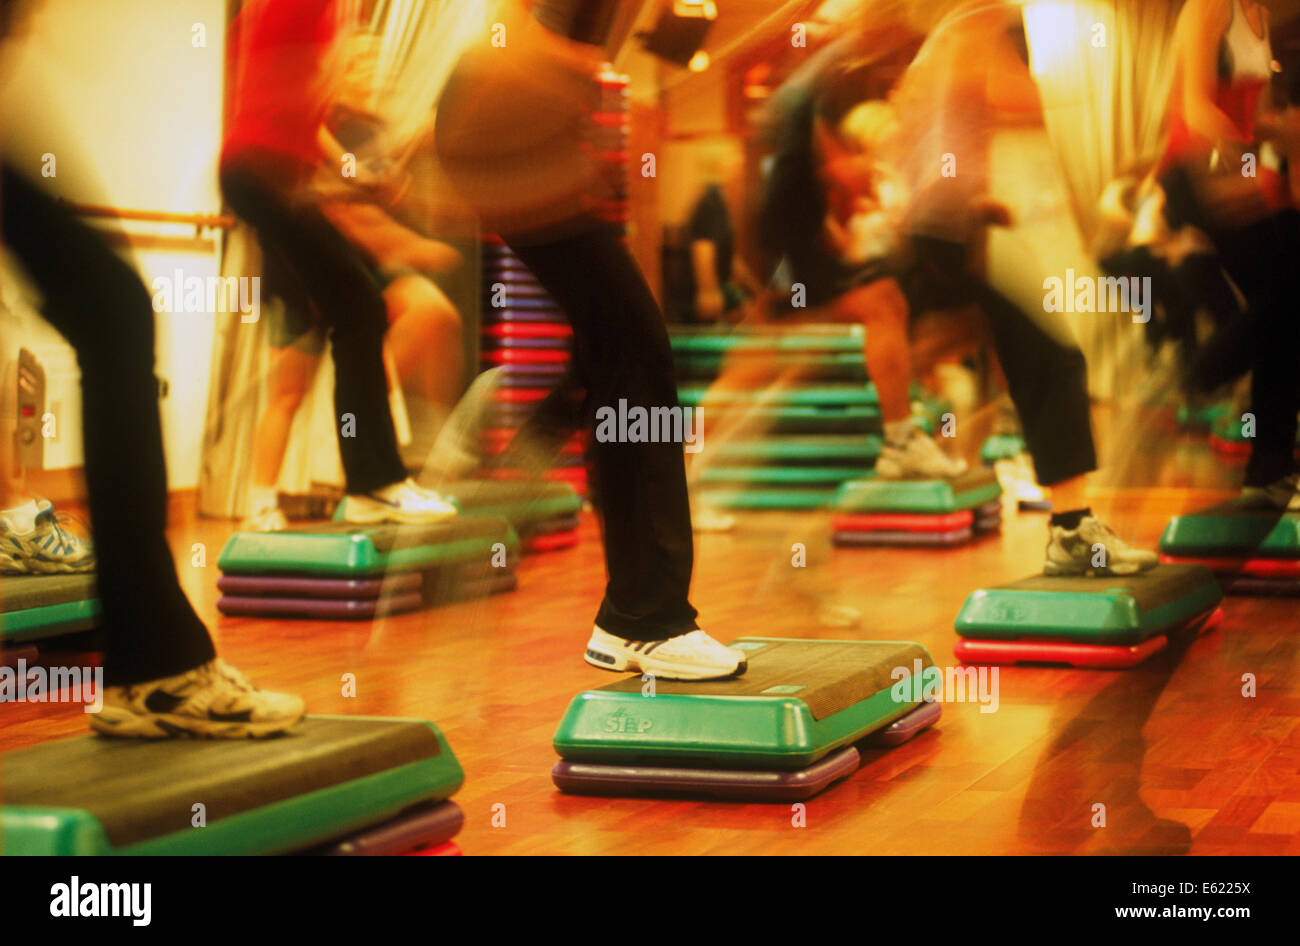 Legs and shoes in motion during stepping exercise class - Stock Image